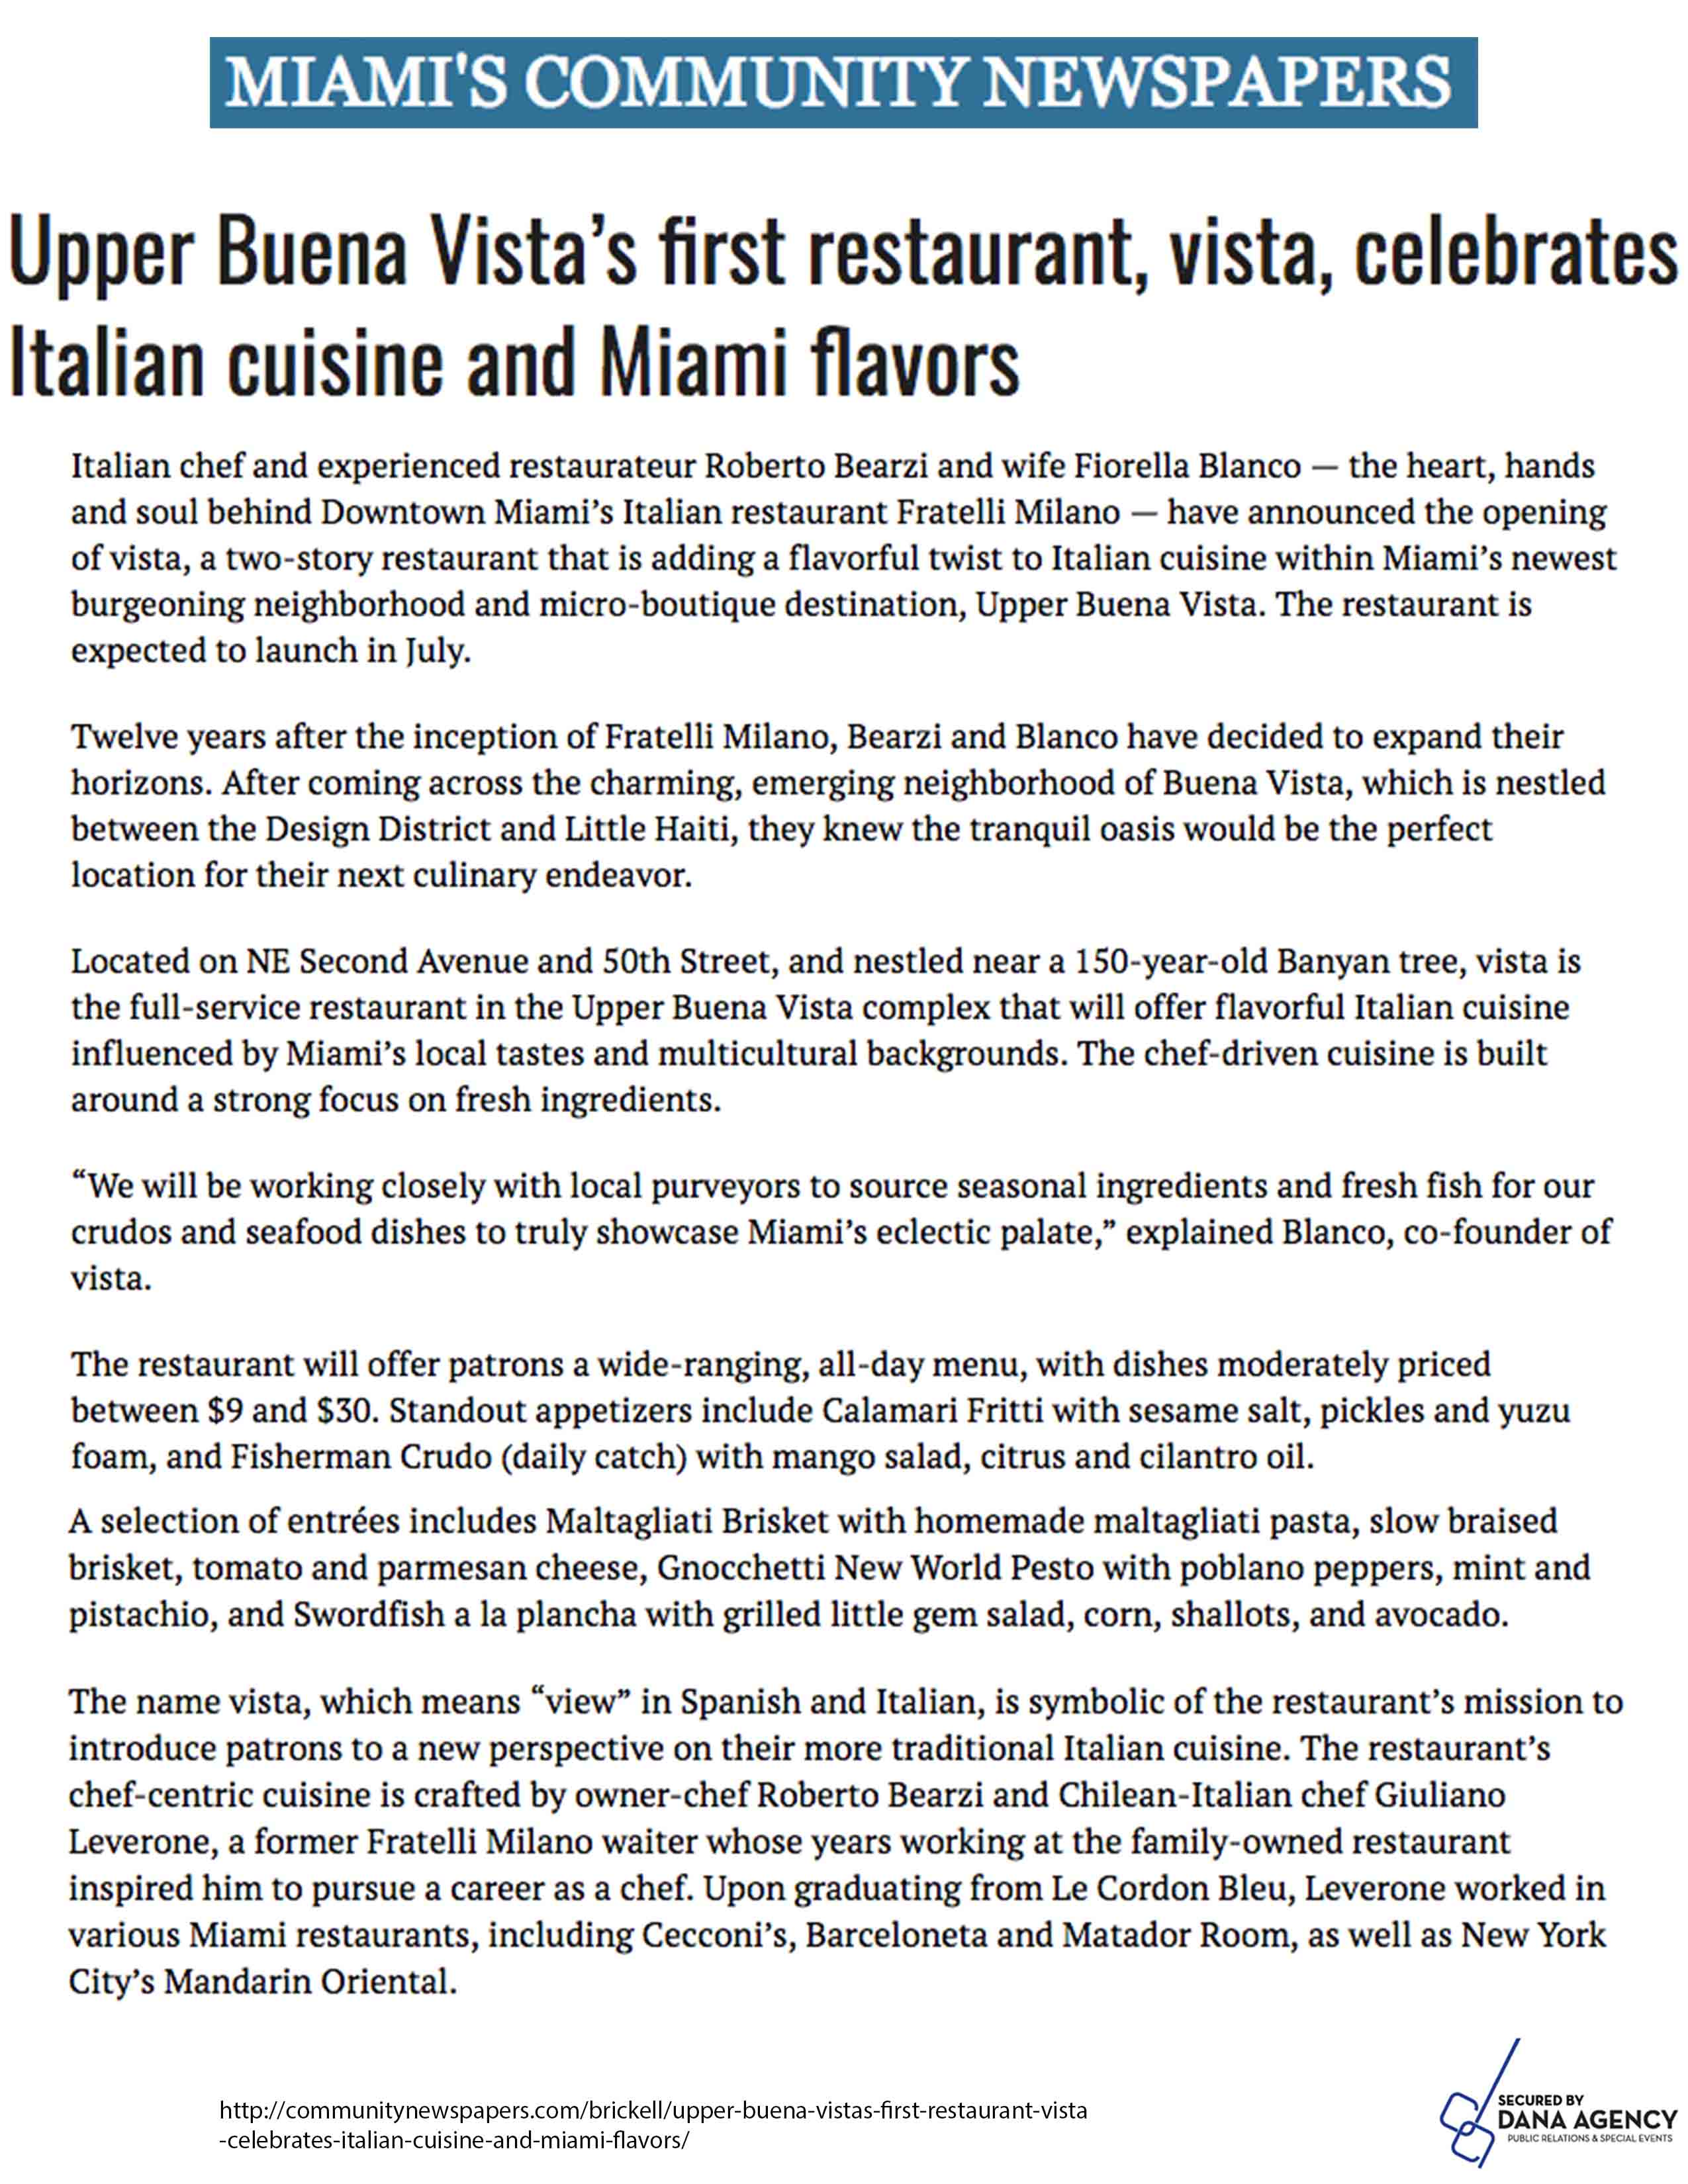 MiamiscommunityNewspapers_6.11.18_Online_Page1